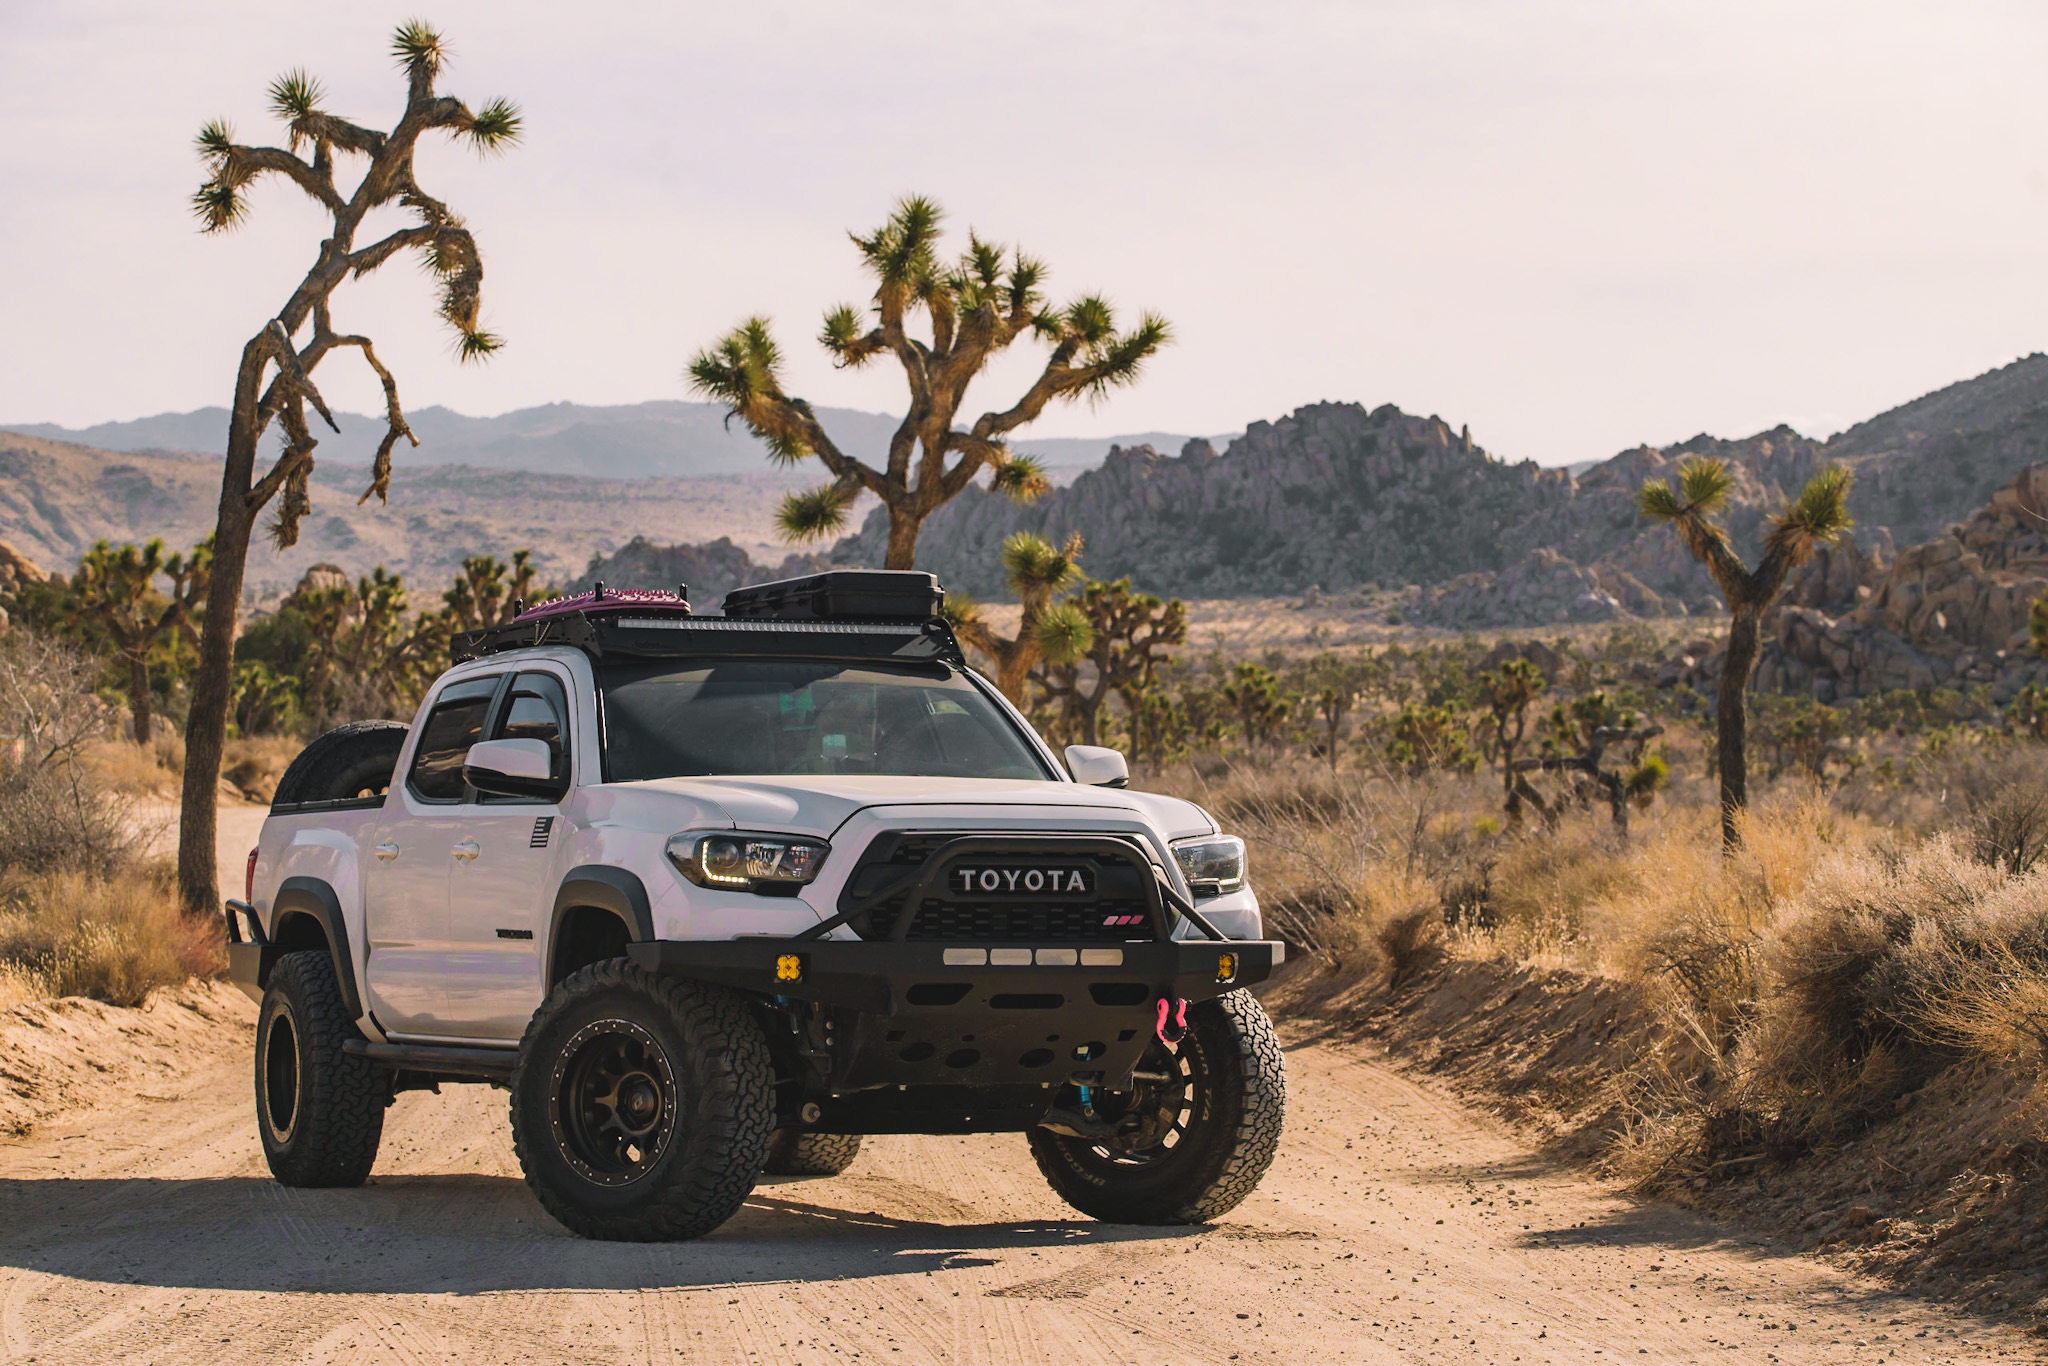 Lifted Super White 3rd Gen Tacoma with SCS Ray 10 Wheels, King Coilovers & Total Chaos UCAs